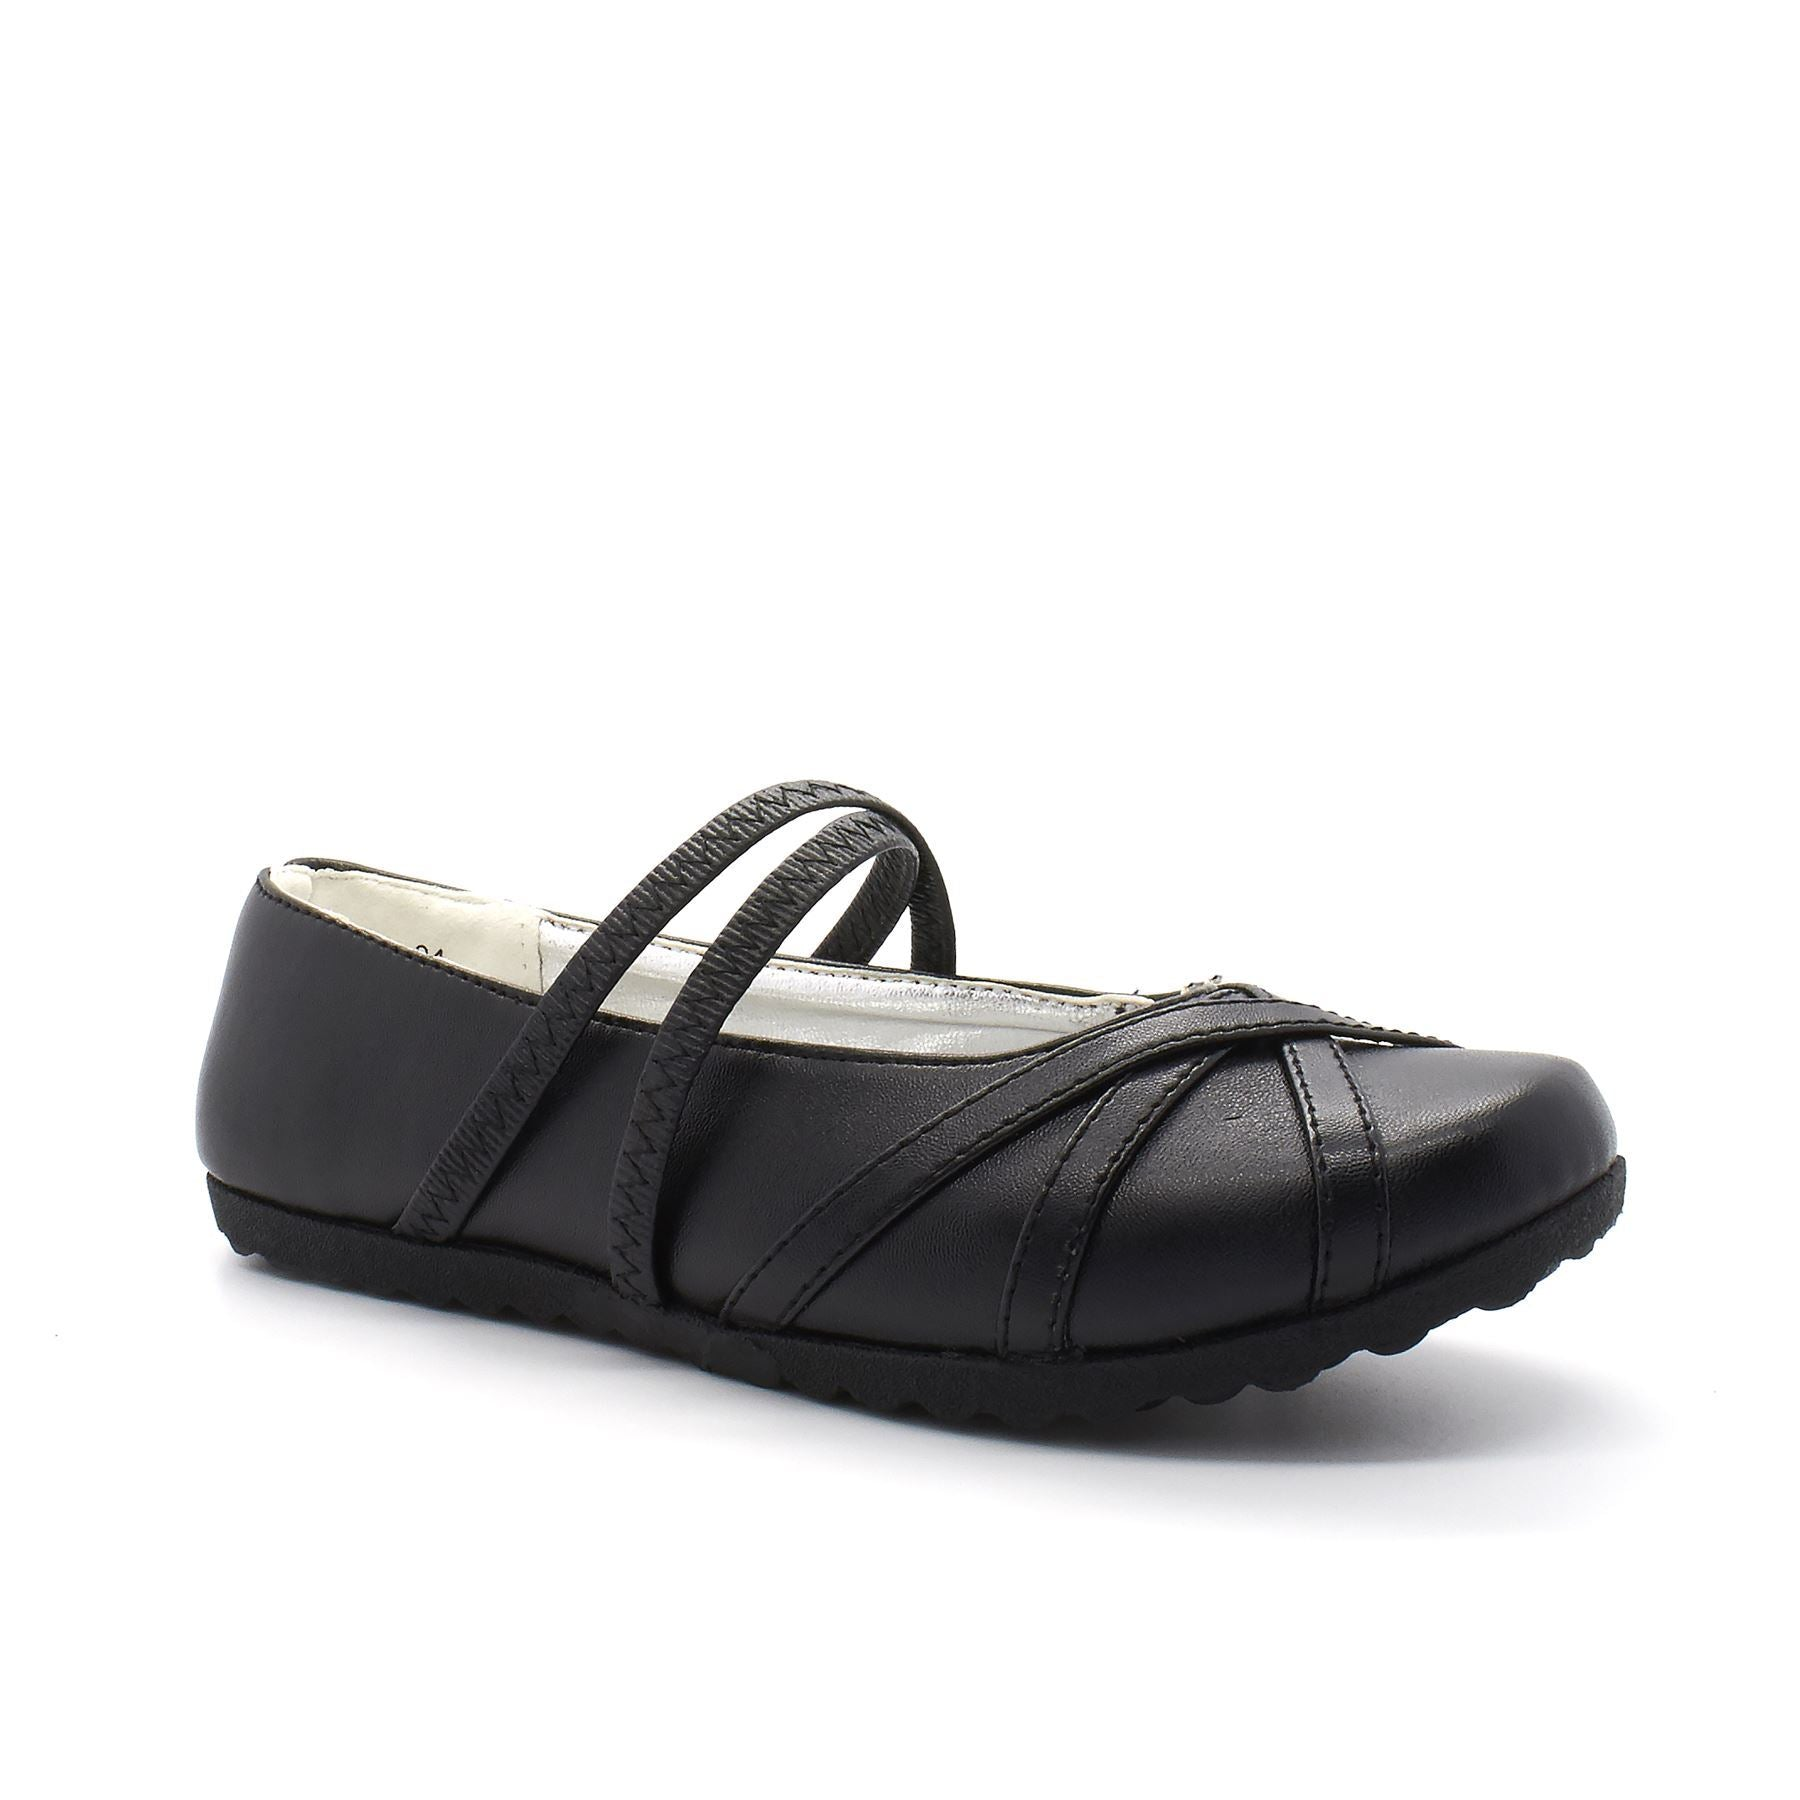 Black Faux Leather Round Toe Slip On